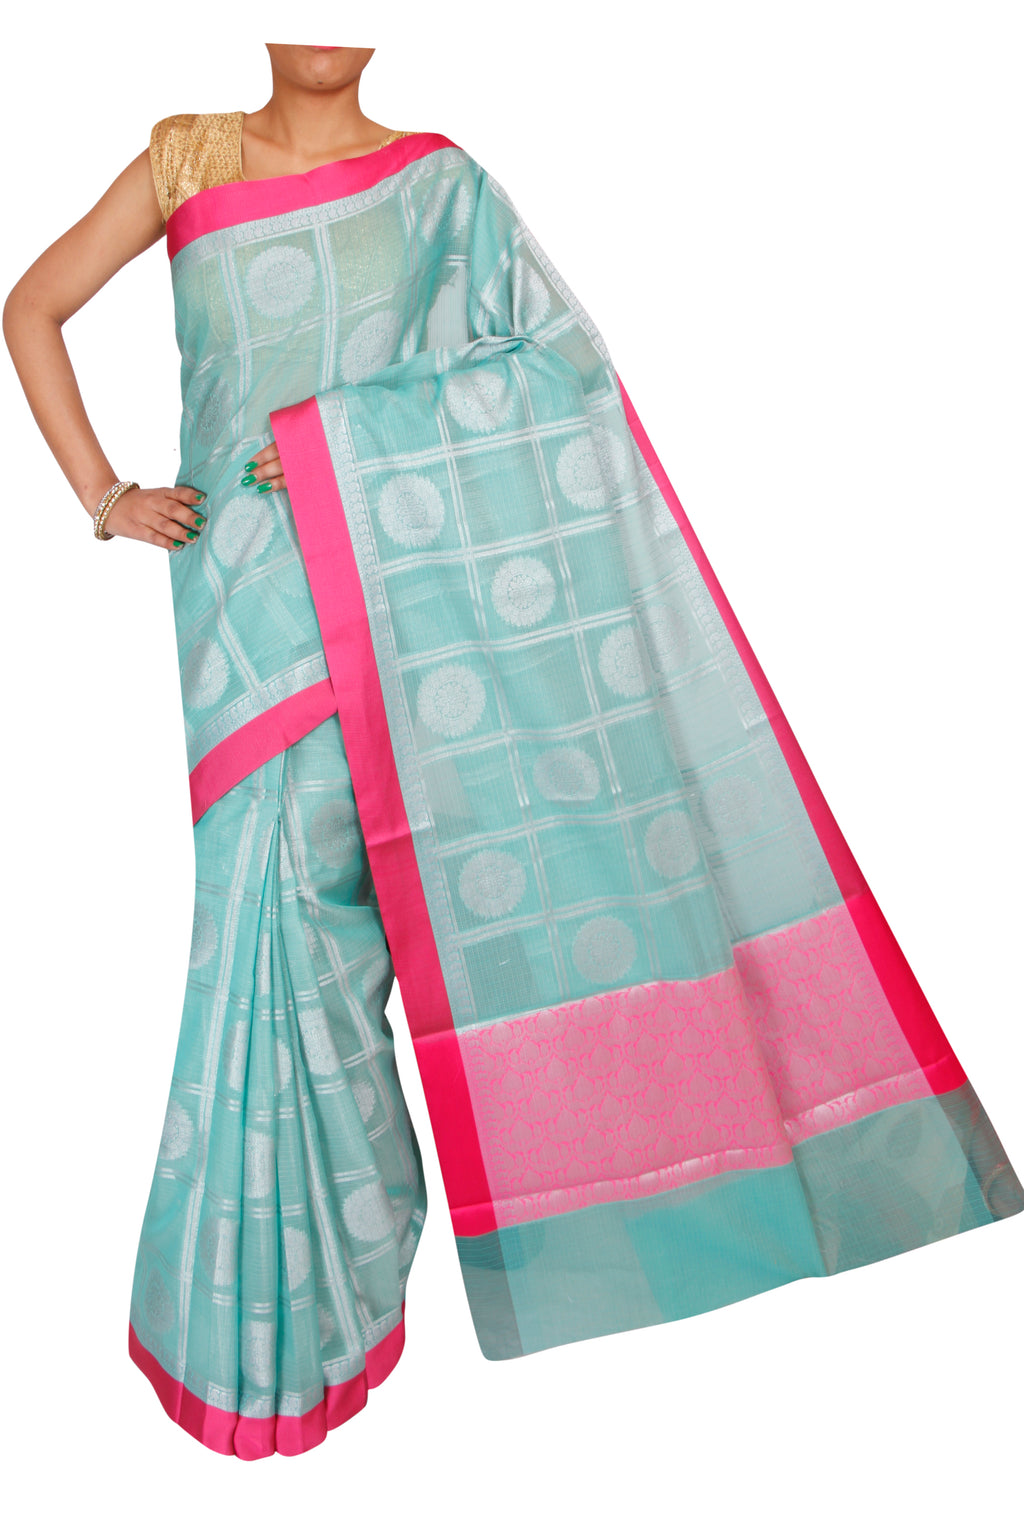 Silver checks and designs on Sea green kota saree - EthnicRoom